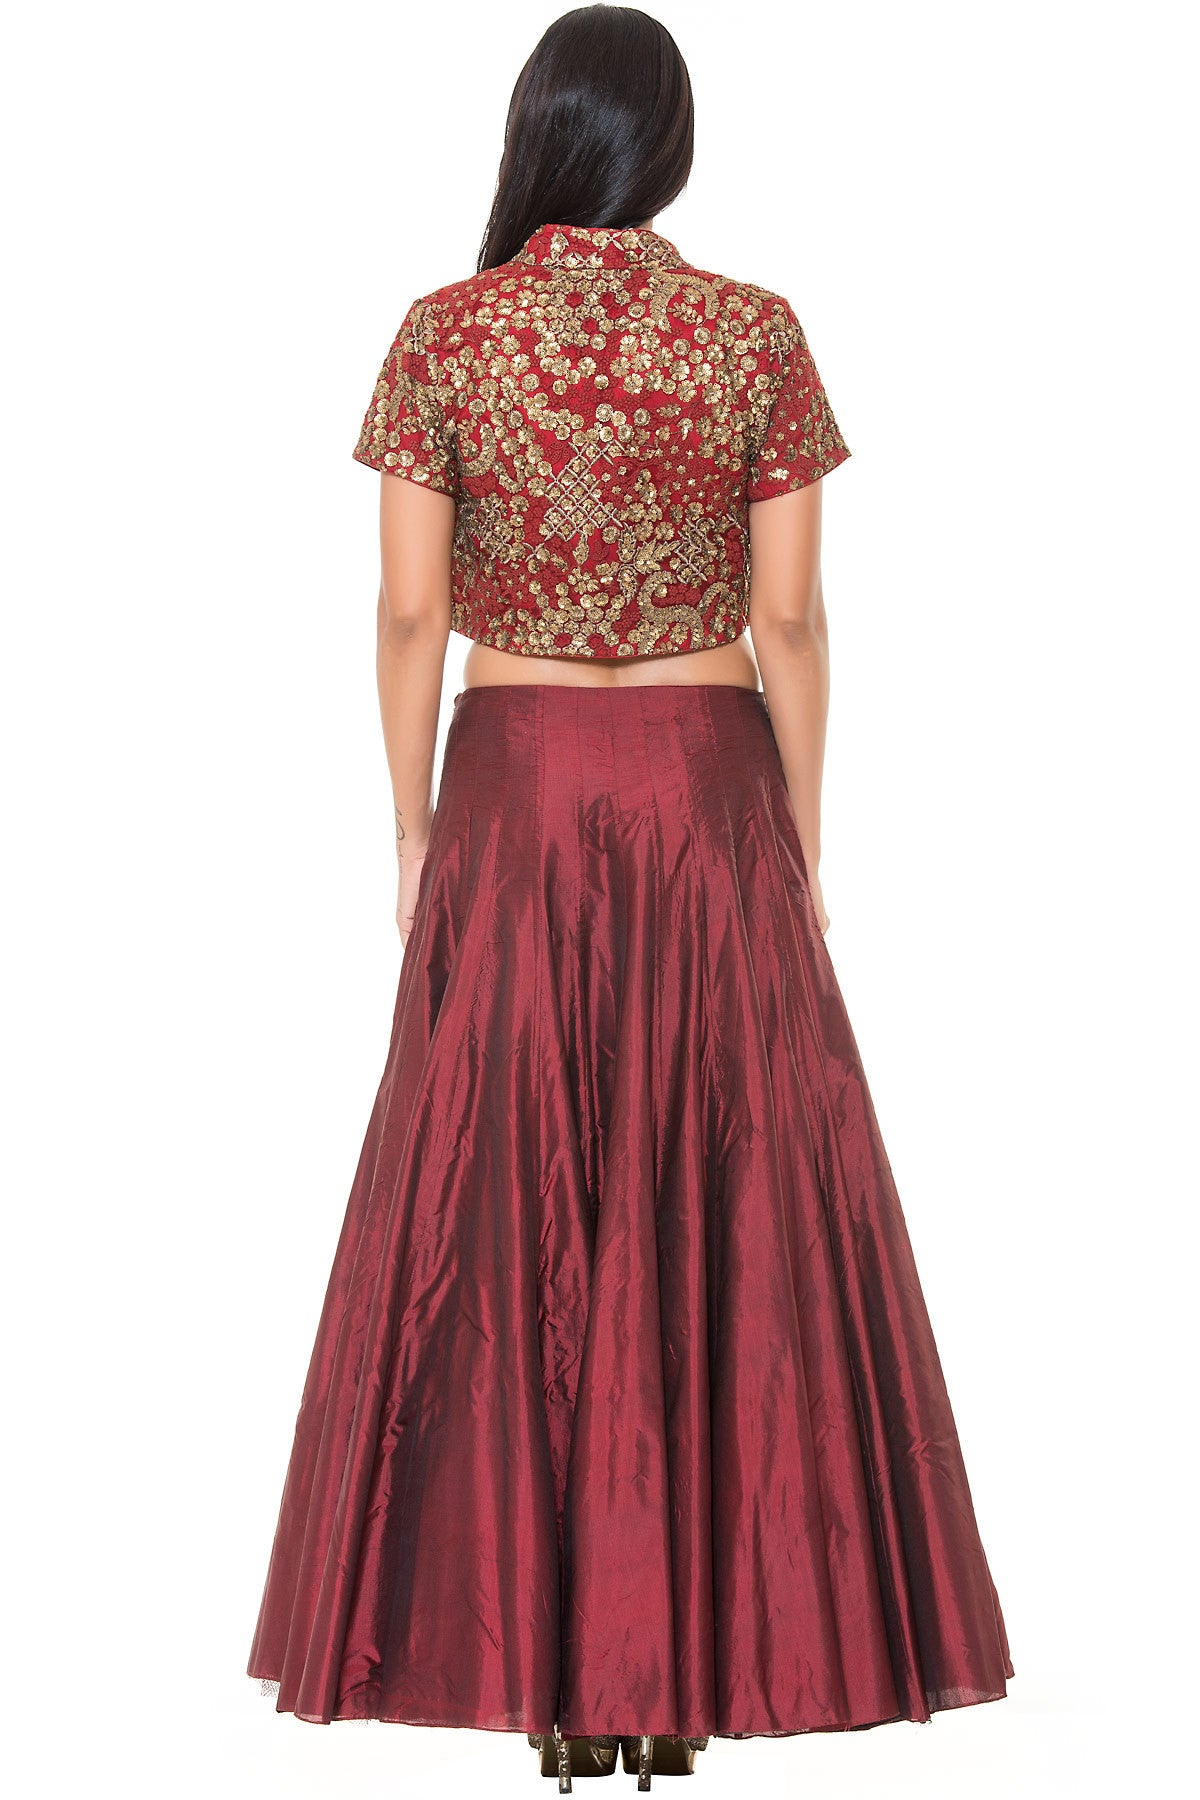 Buy Maroon Skirt With Golden Crop top and Red Embroidered Jacket Online at indi.fashion